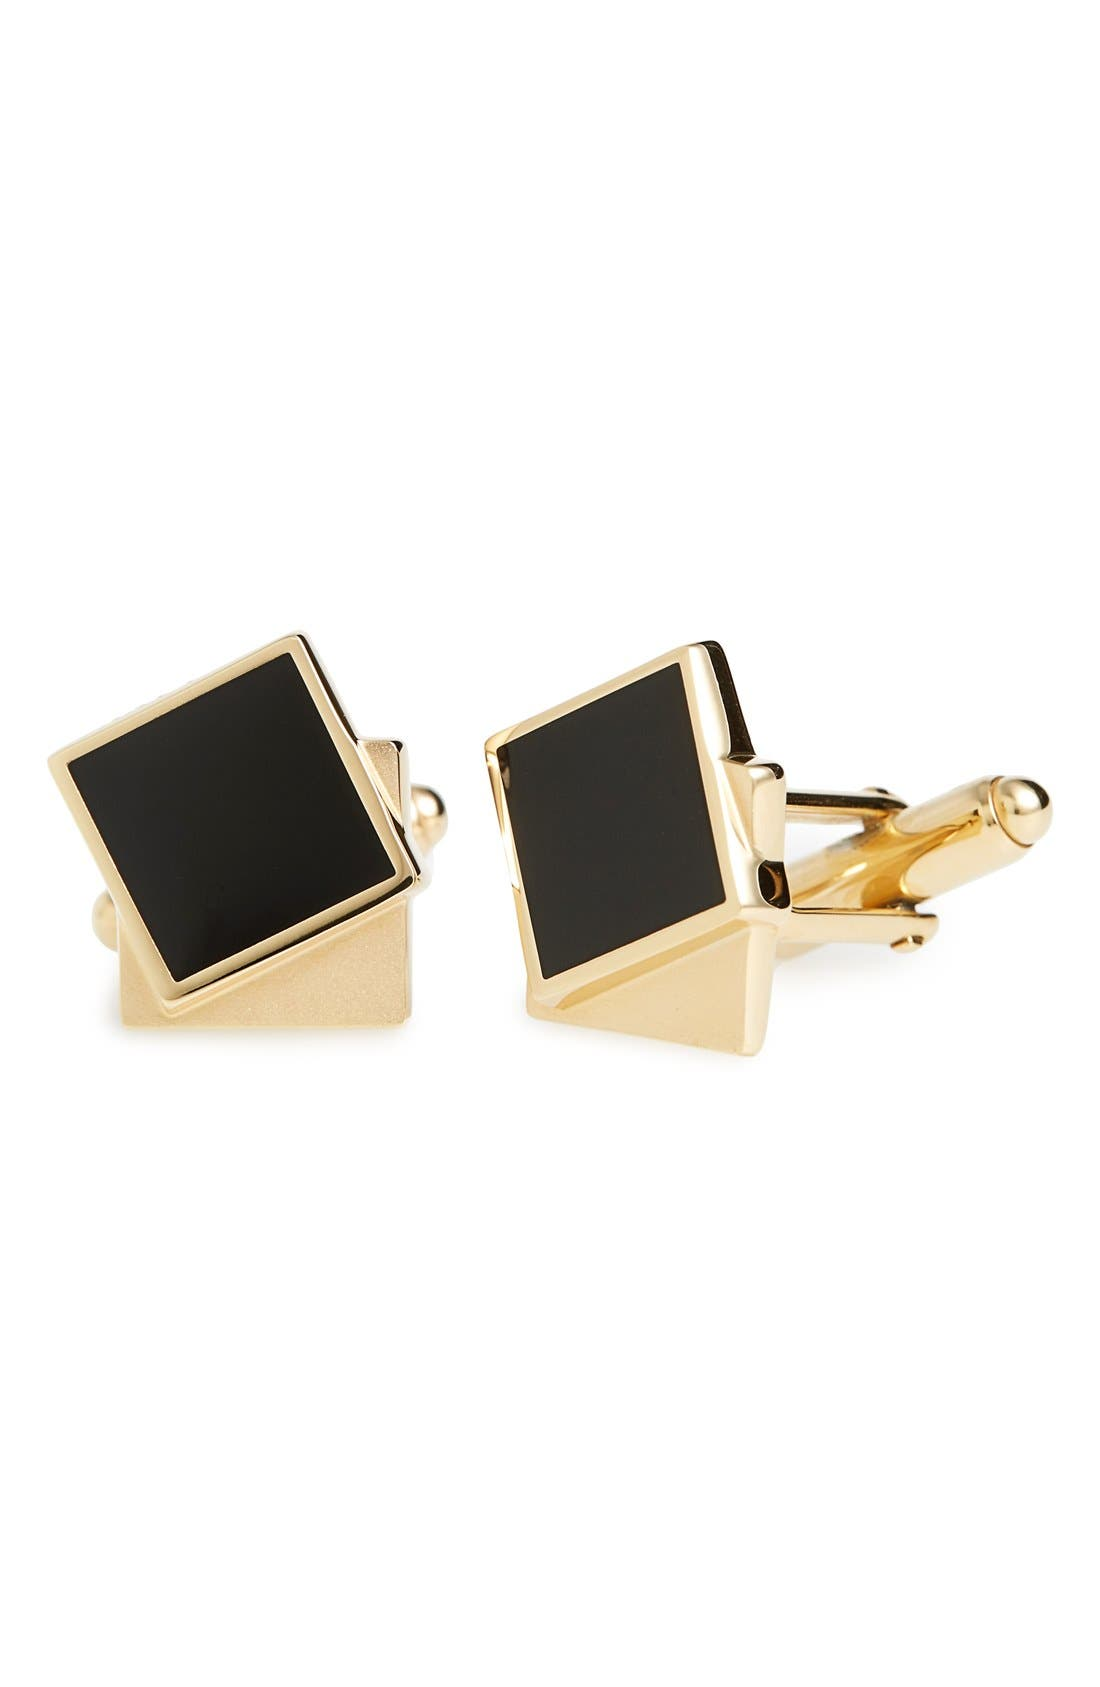 Enameled Double Square Cuff Links,                         Main,                         color, Gold/Black